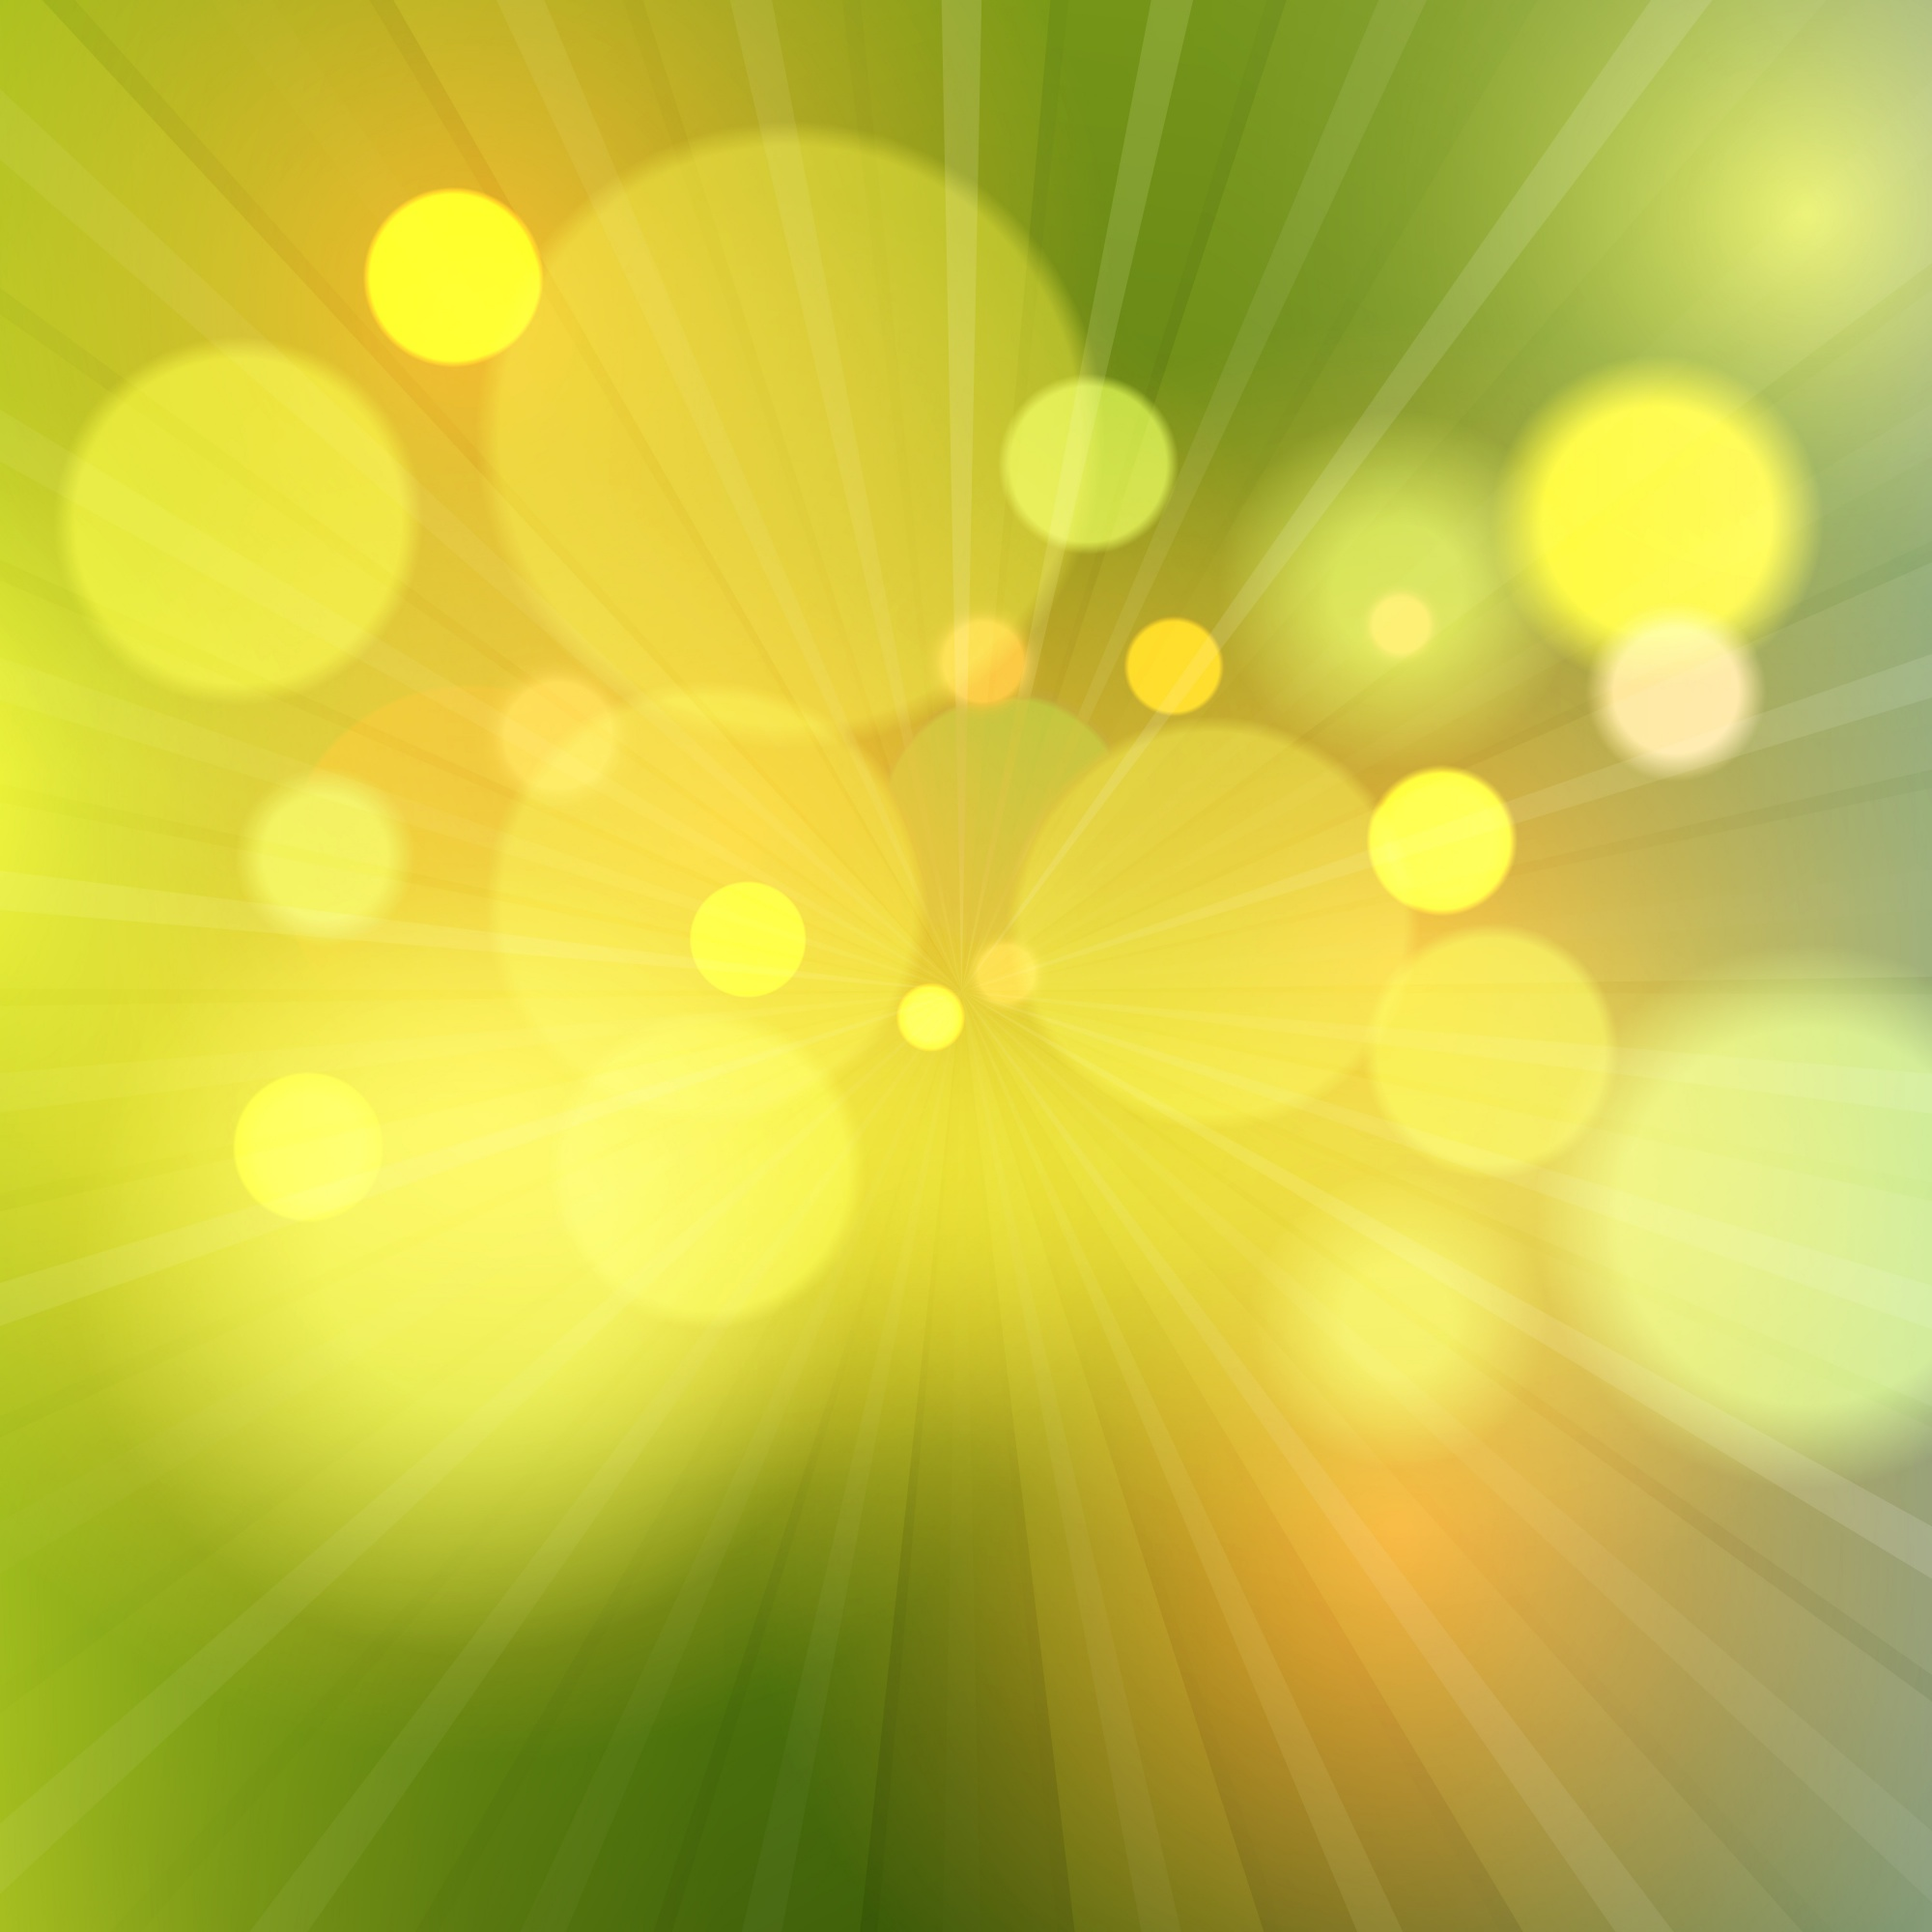 Abstract background with defocussed bokeh lights